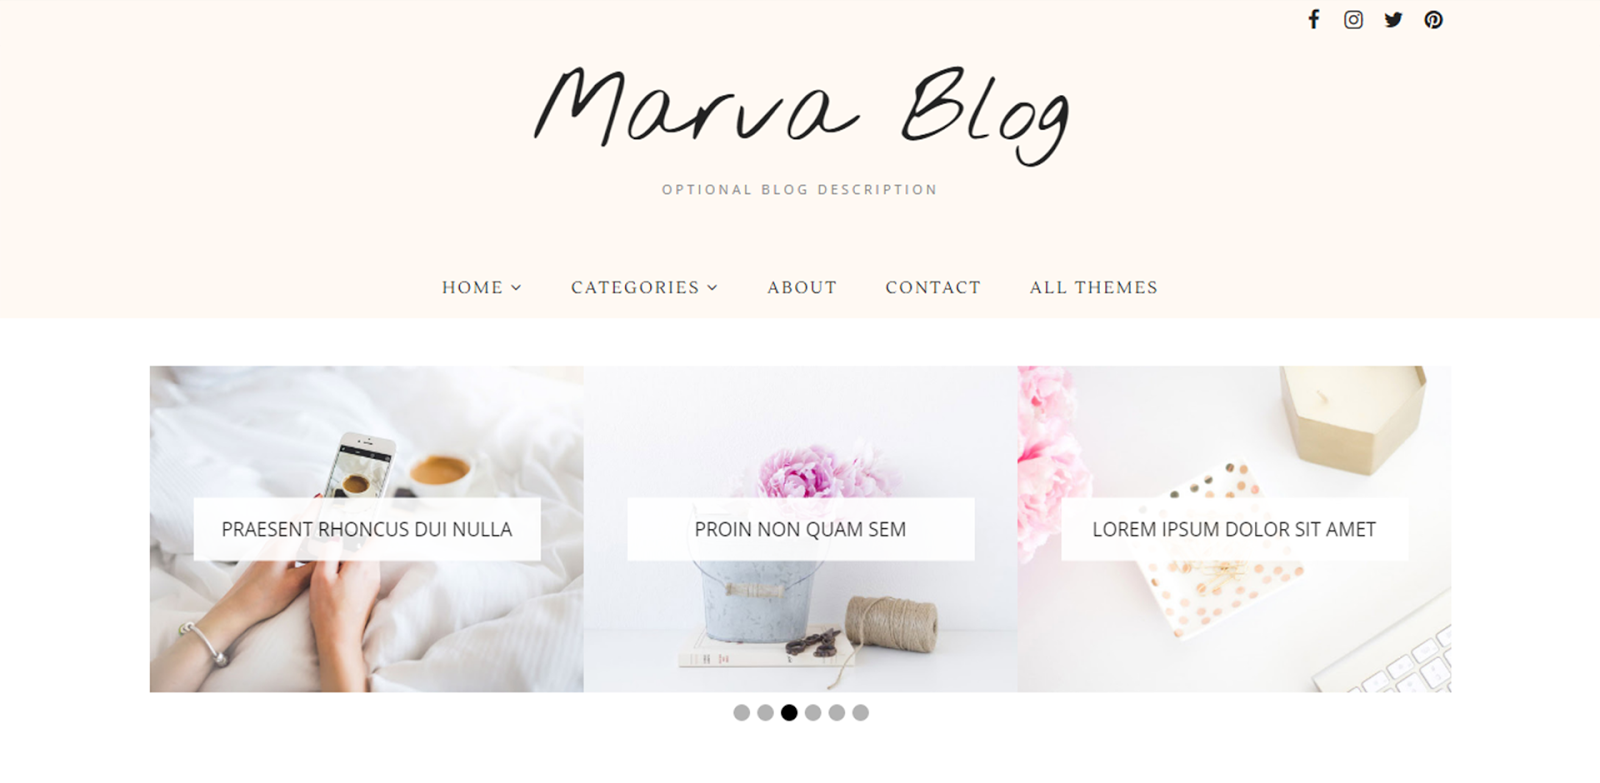 marva blog blogger template